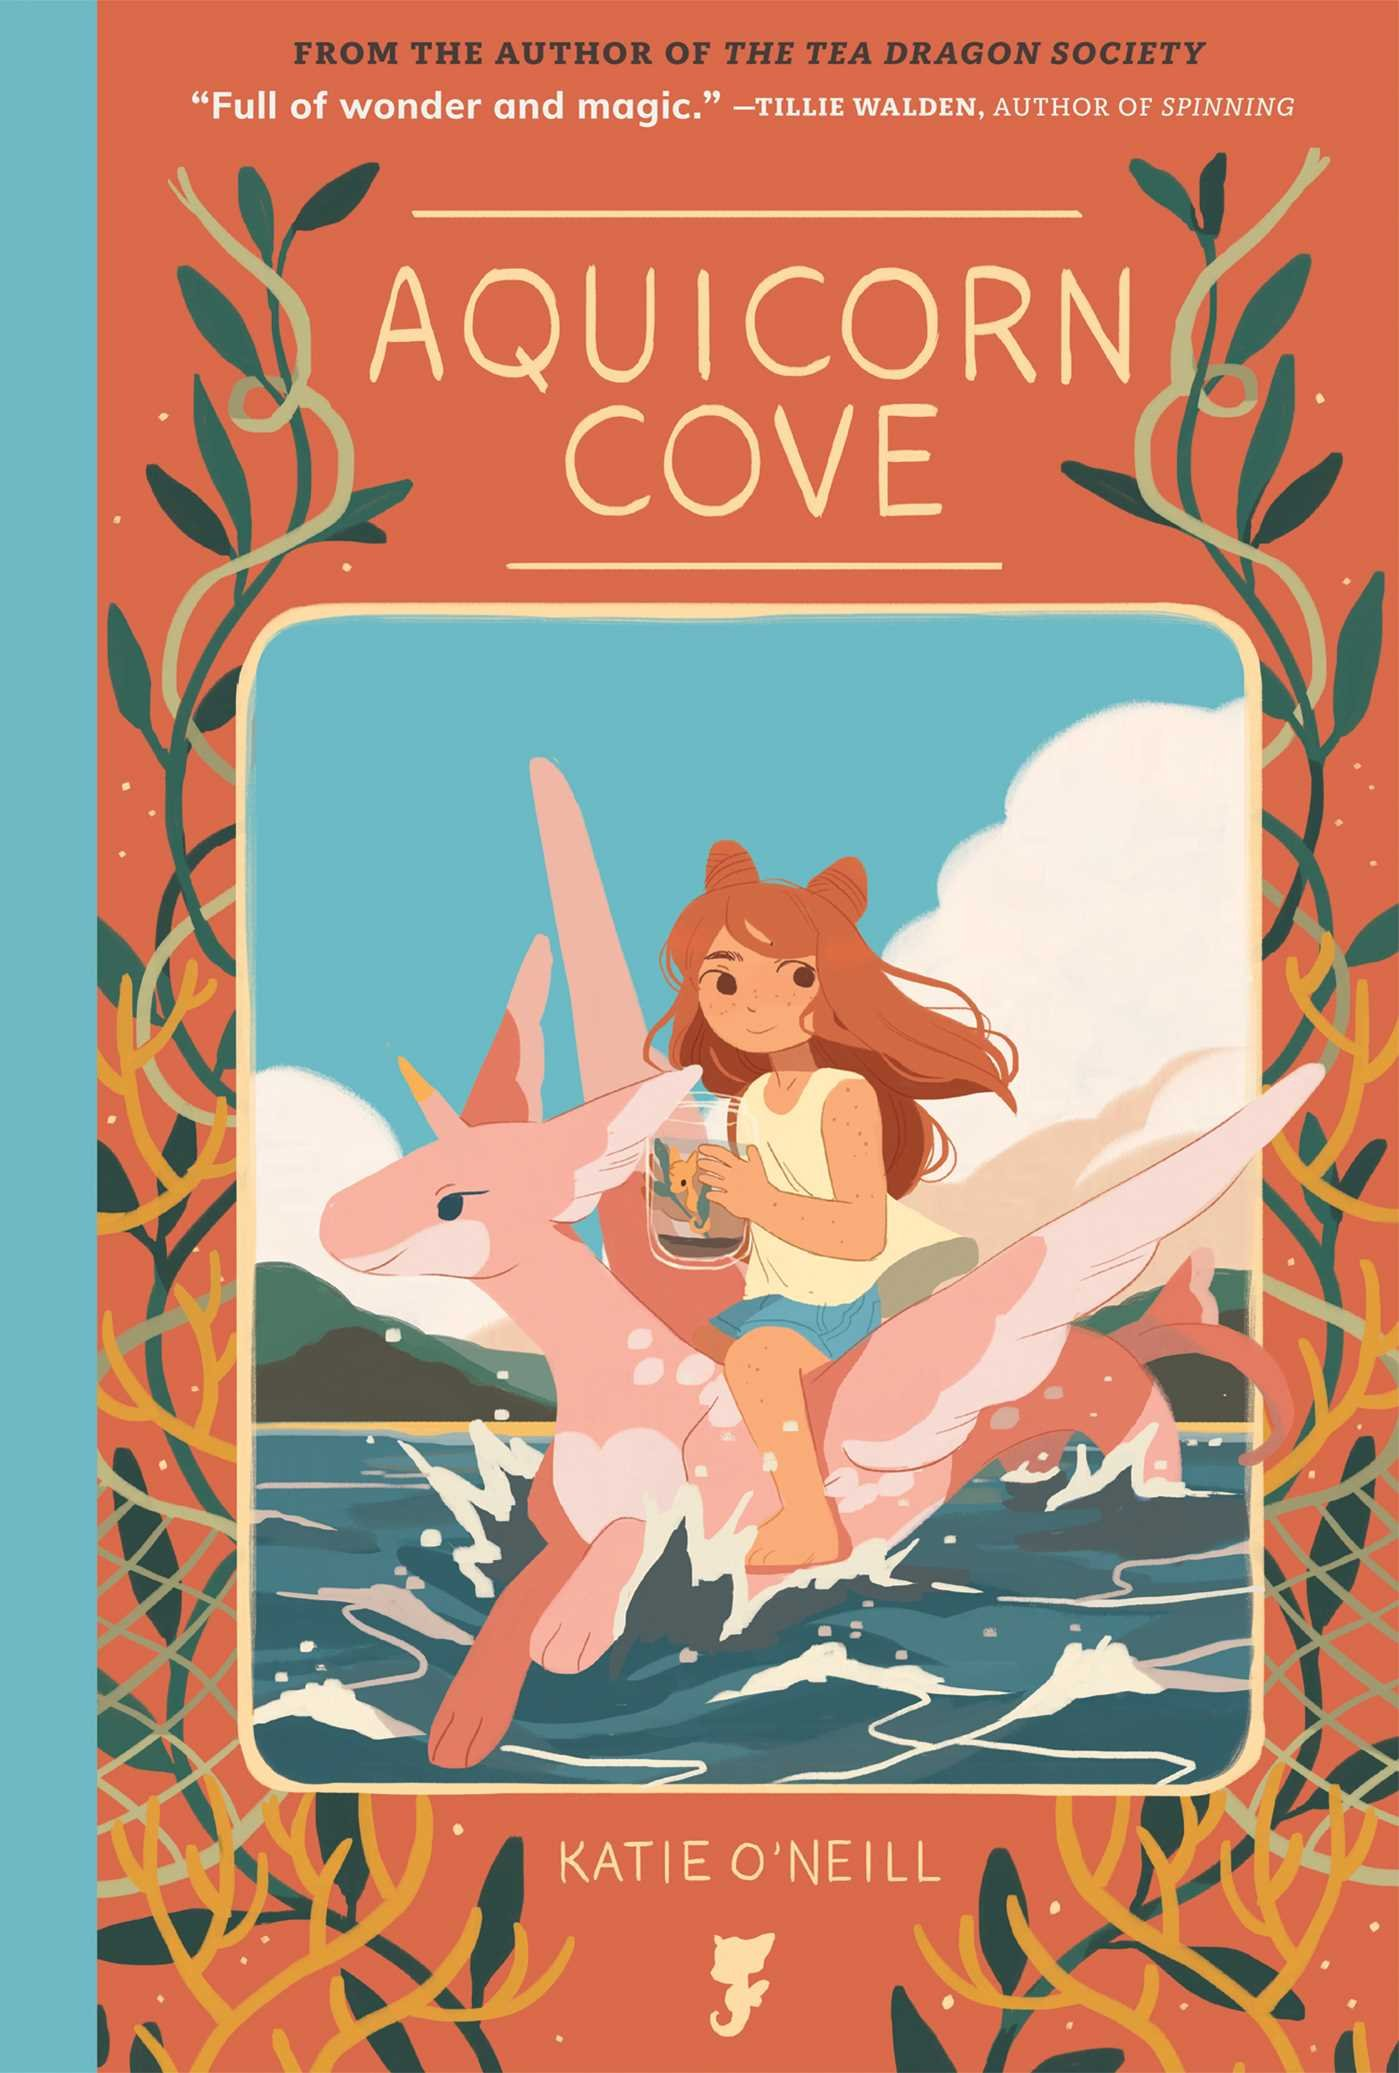 Aquicorn Cove by Oni Press (Image #1)